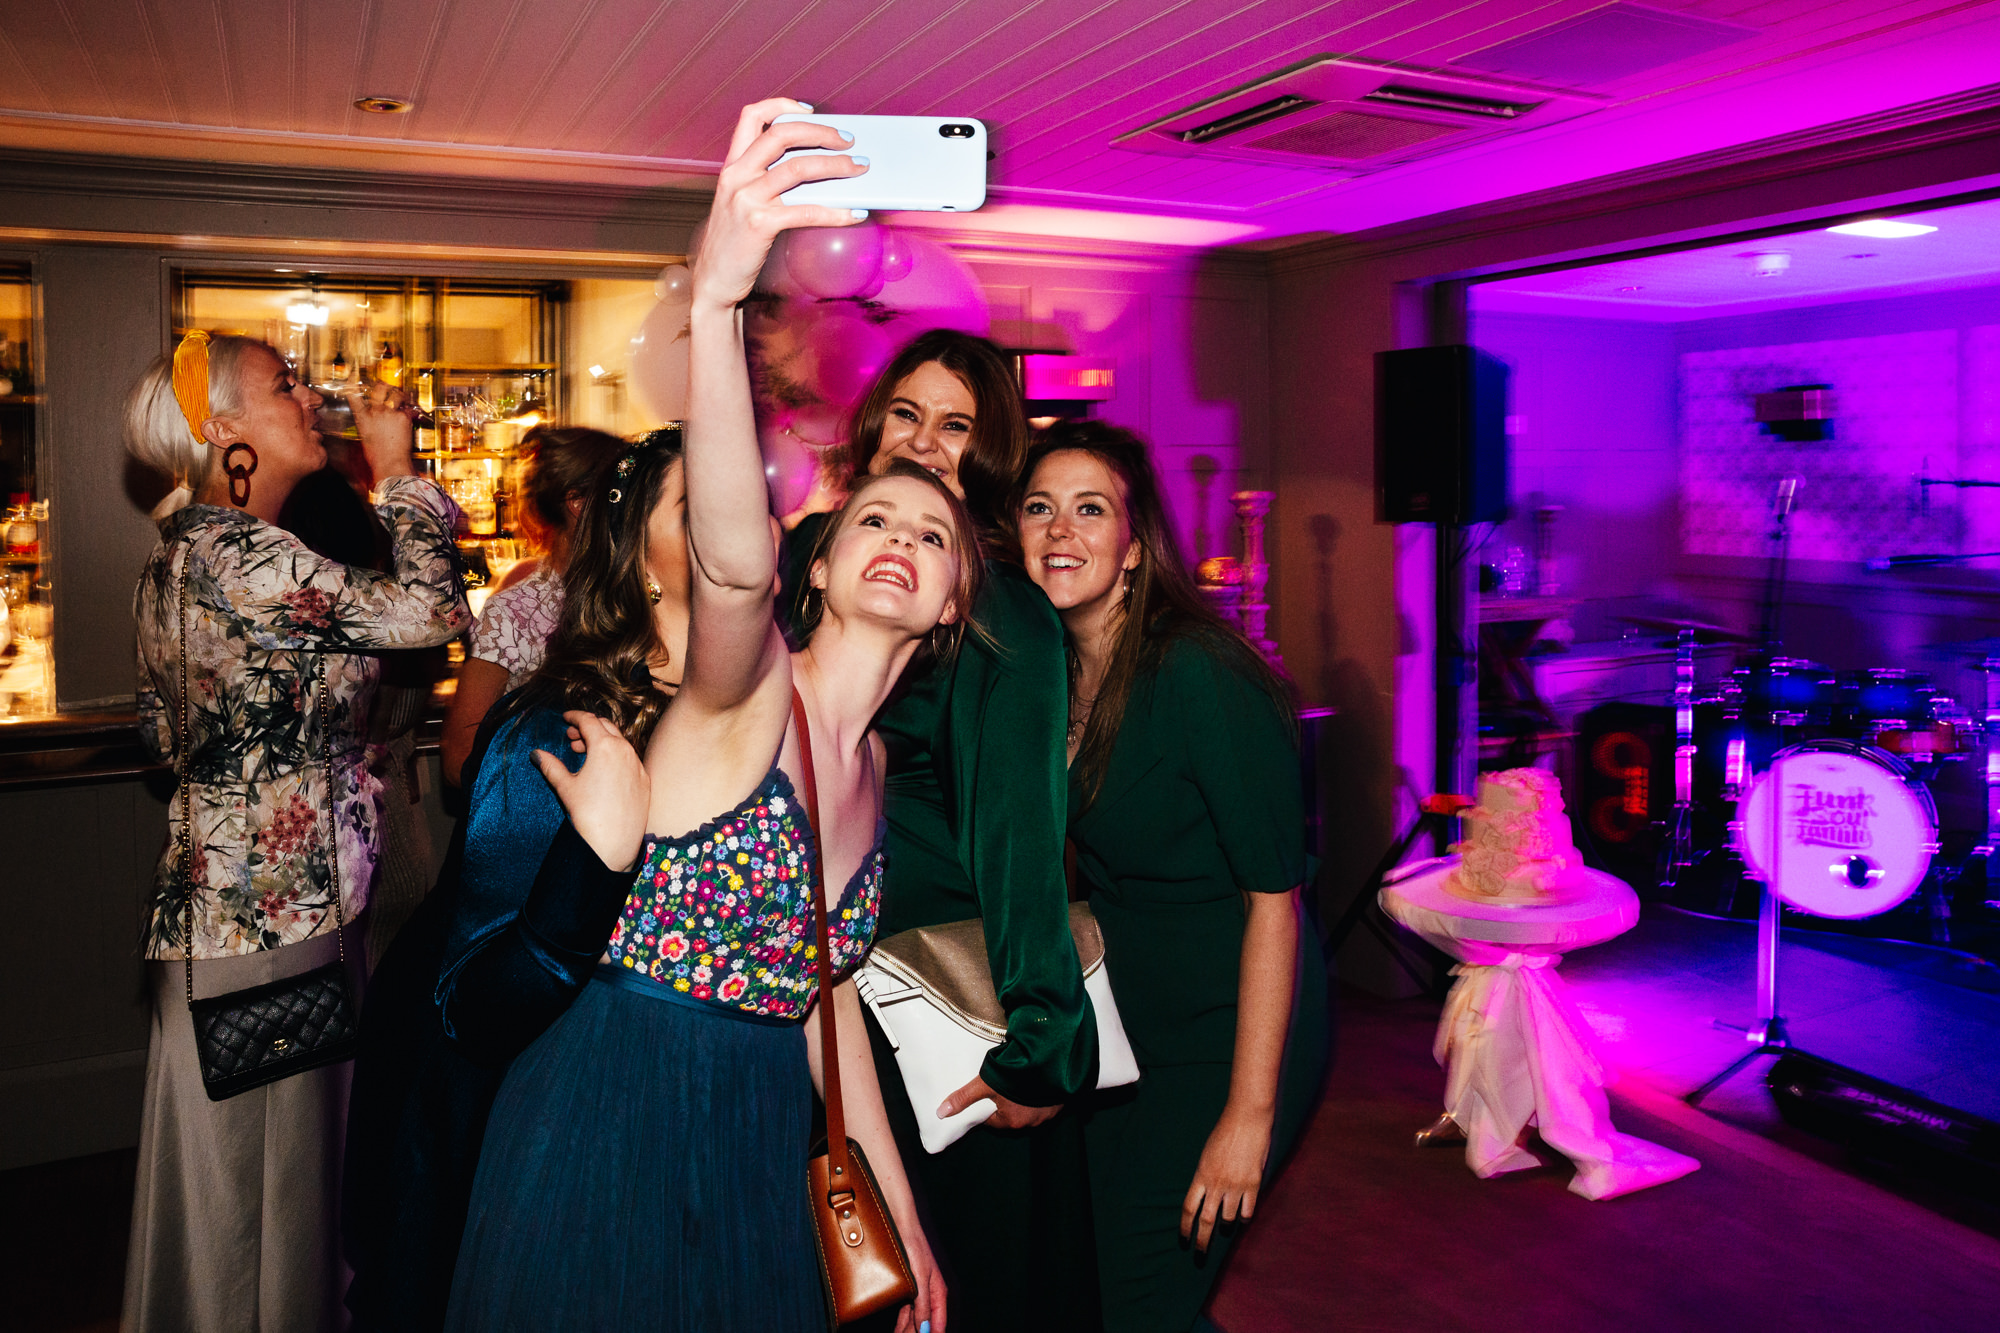 Second Wedding Photographer - Group of friends taking a selfie on the dance floor at wedding